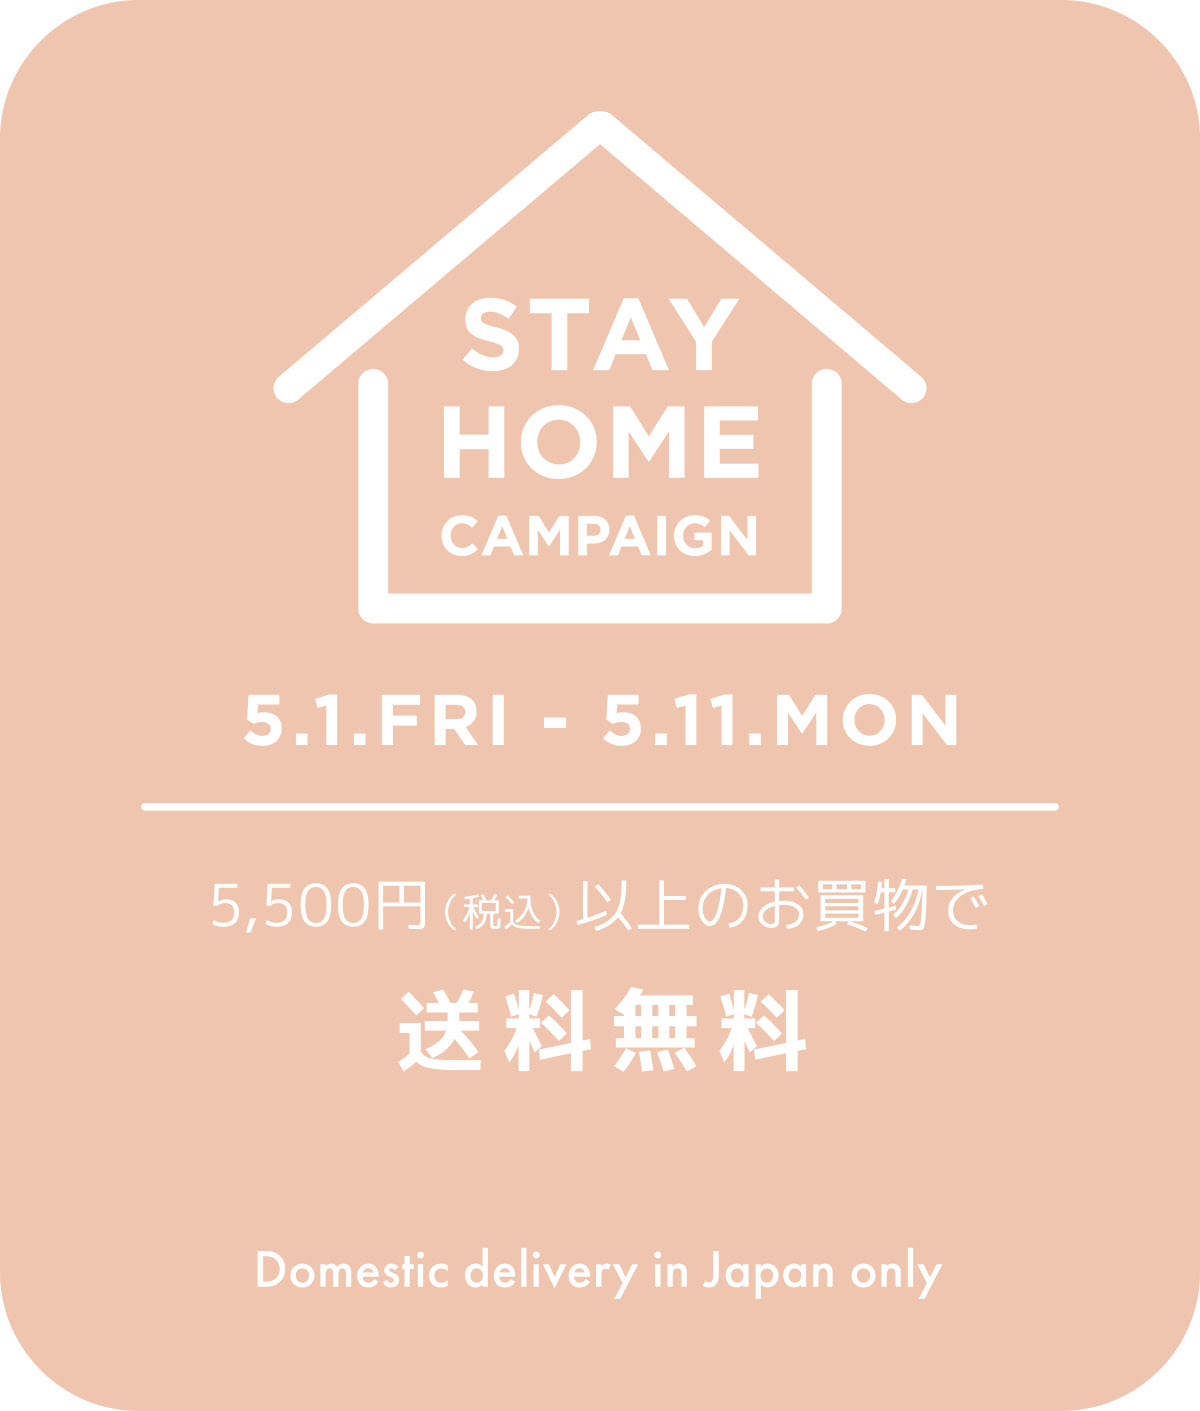 STAY HOME CAMPAIGN おうち時間を応援する送料無料キャンペーン